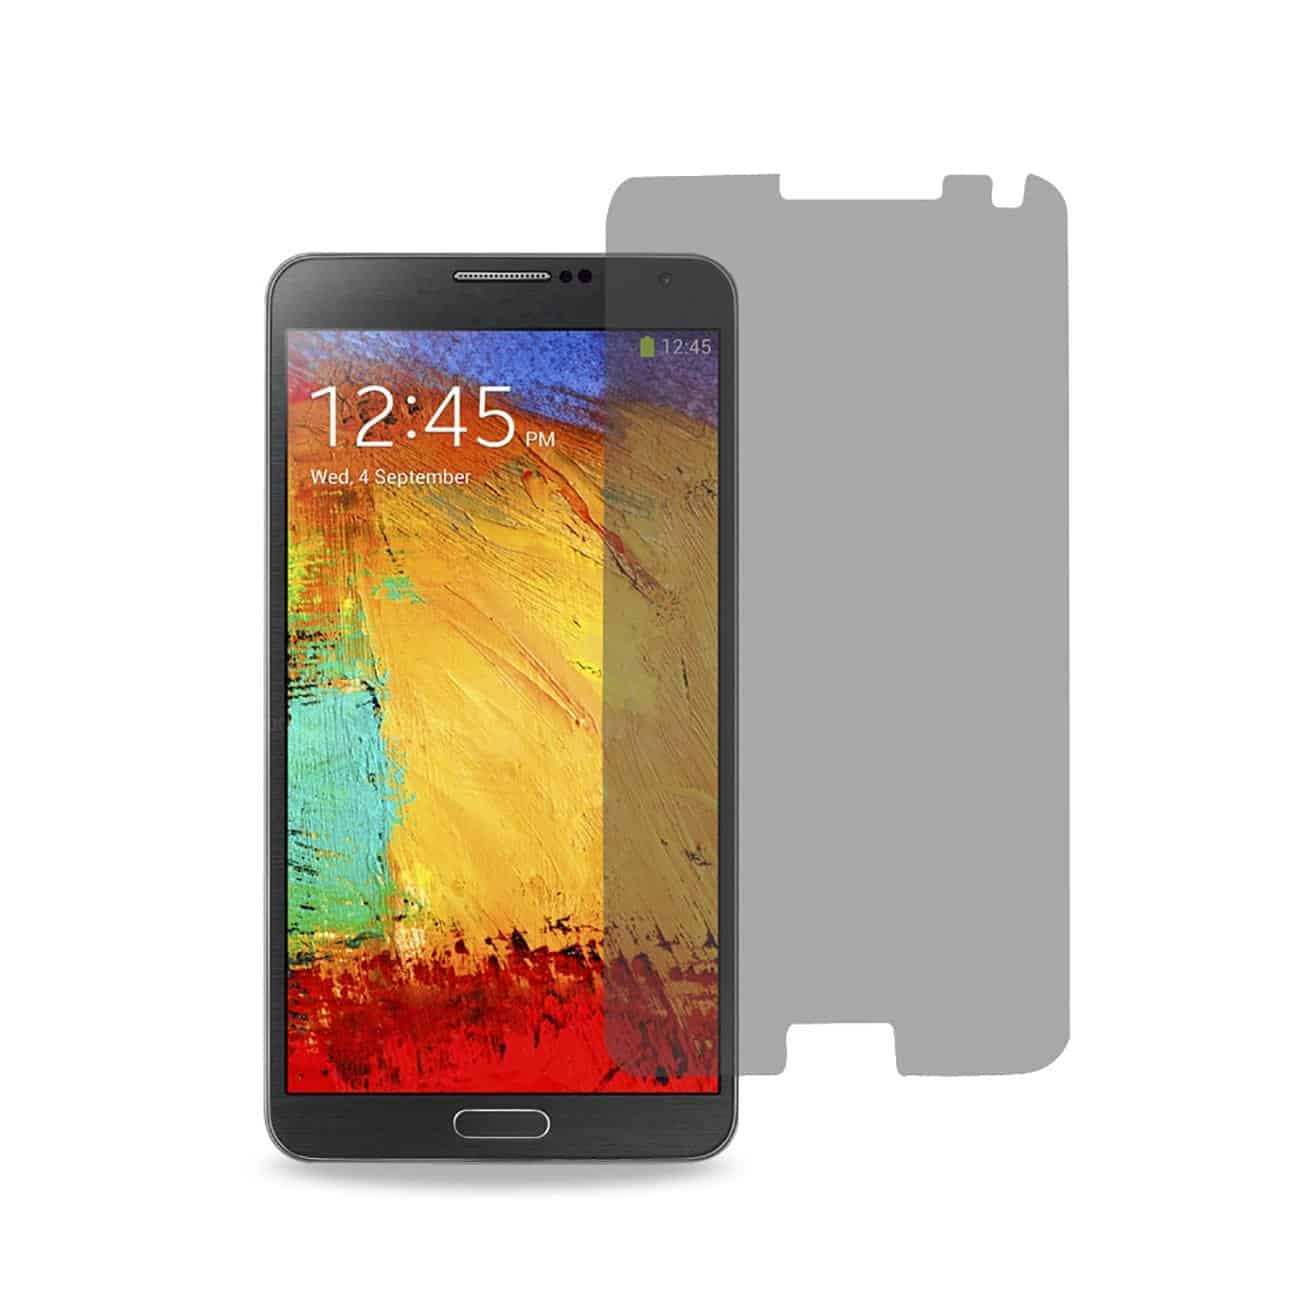 SAMSUNG GALAXY NOTE 3 PRIVACY SCREEN PROTECTOR IN CLEAR